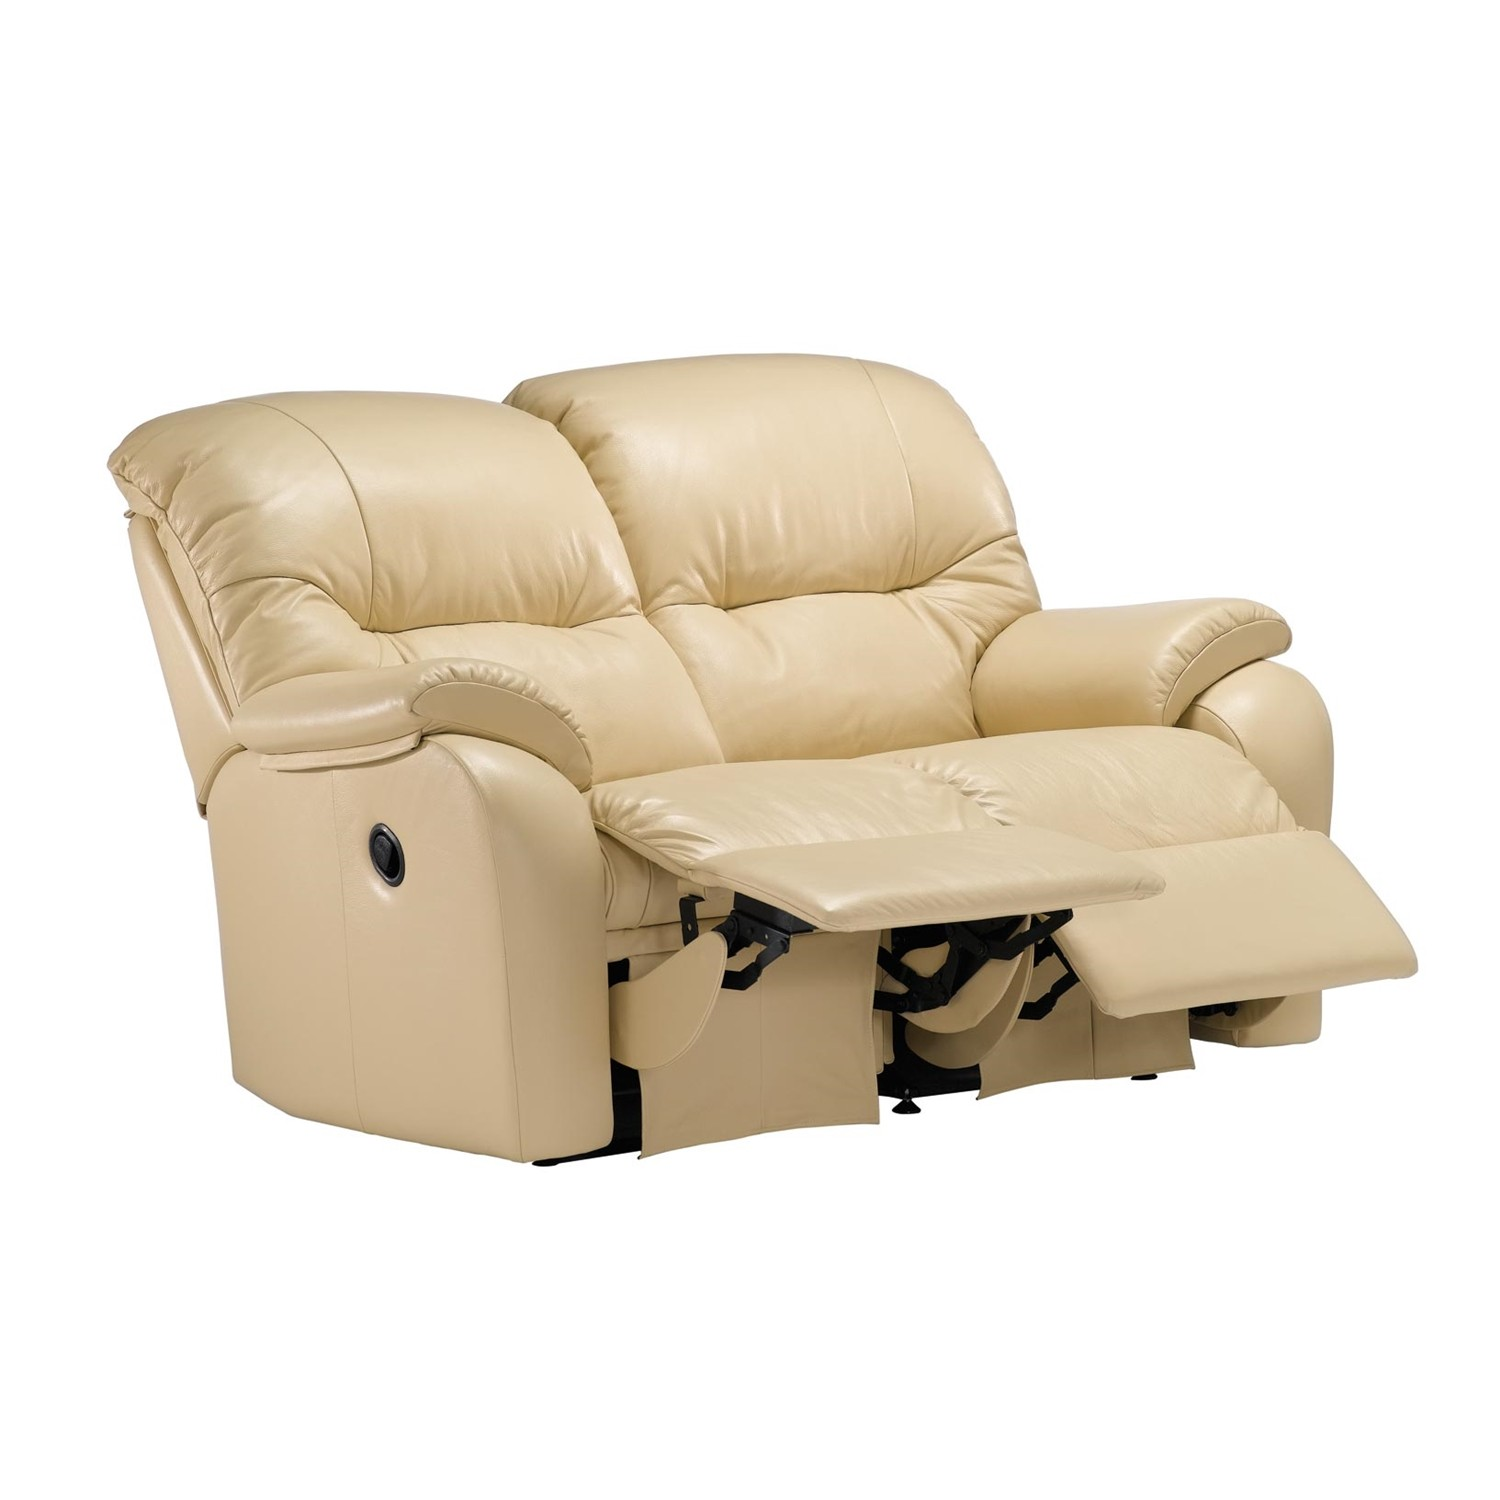 2 seater power recliner sofa hexagonal shaped g plan mistral two double